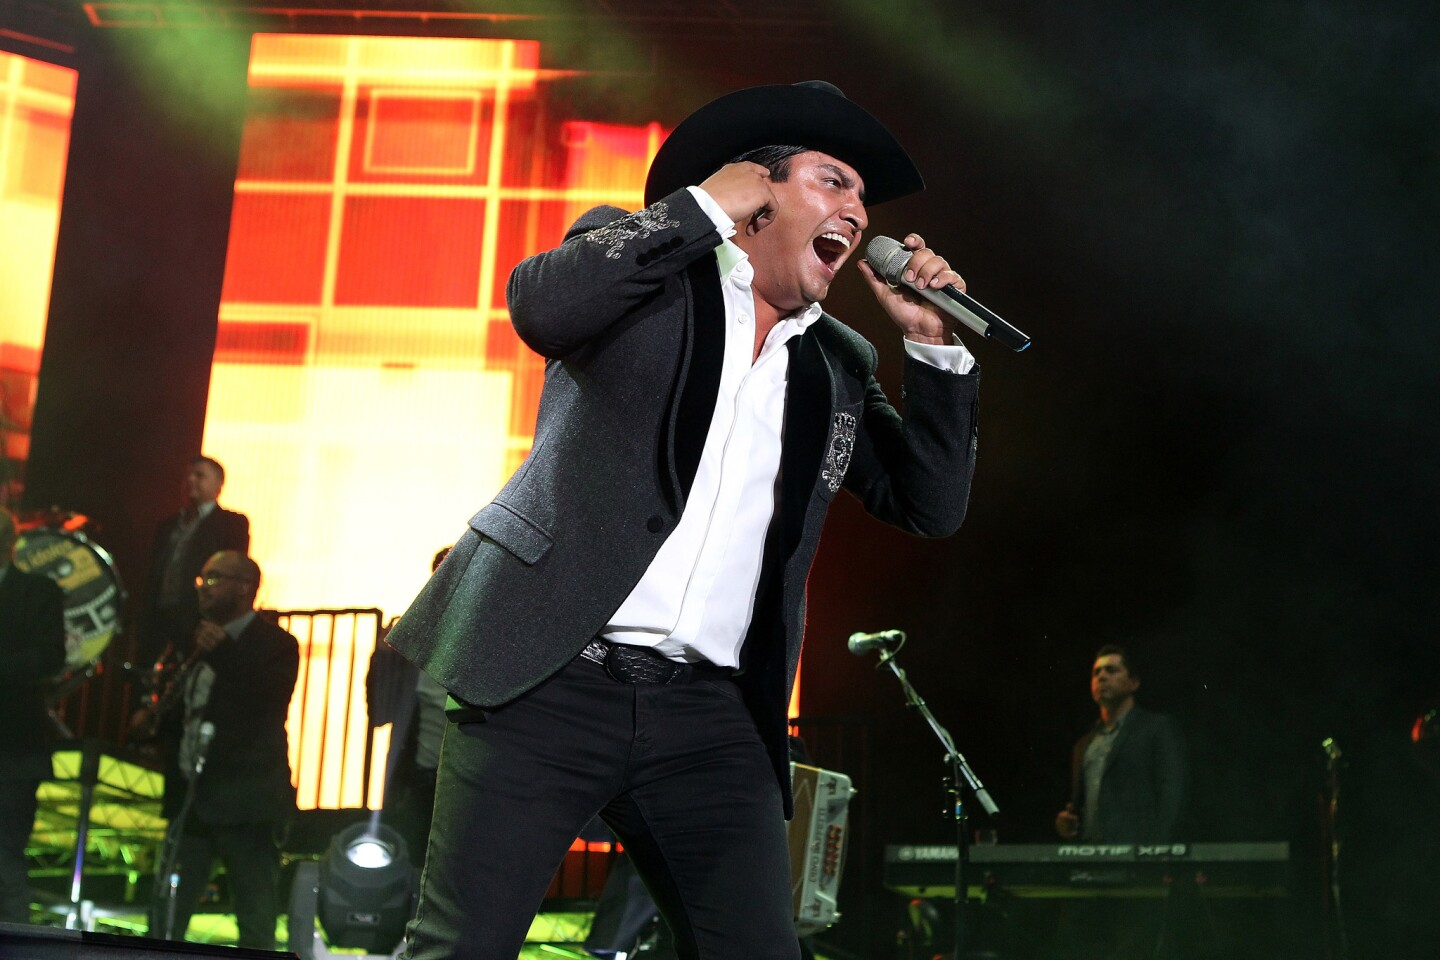 """Julion Alvarez performs onstage during """"Mis IdolosÉHoy Mis Amigos Tour"""" at The Forum on July 16, 2016 in Inglewood, CA. (Photo by © Art. Garcia/DDPixels.com)"""